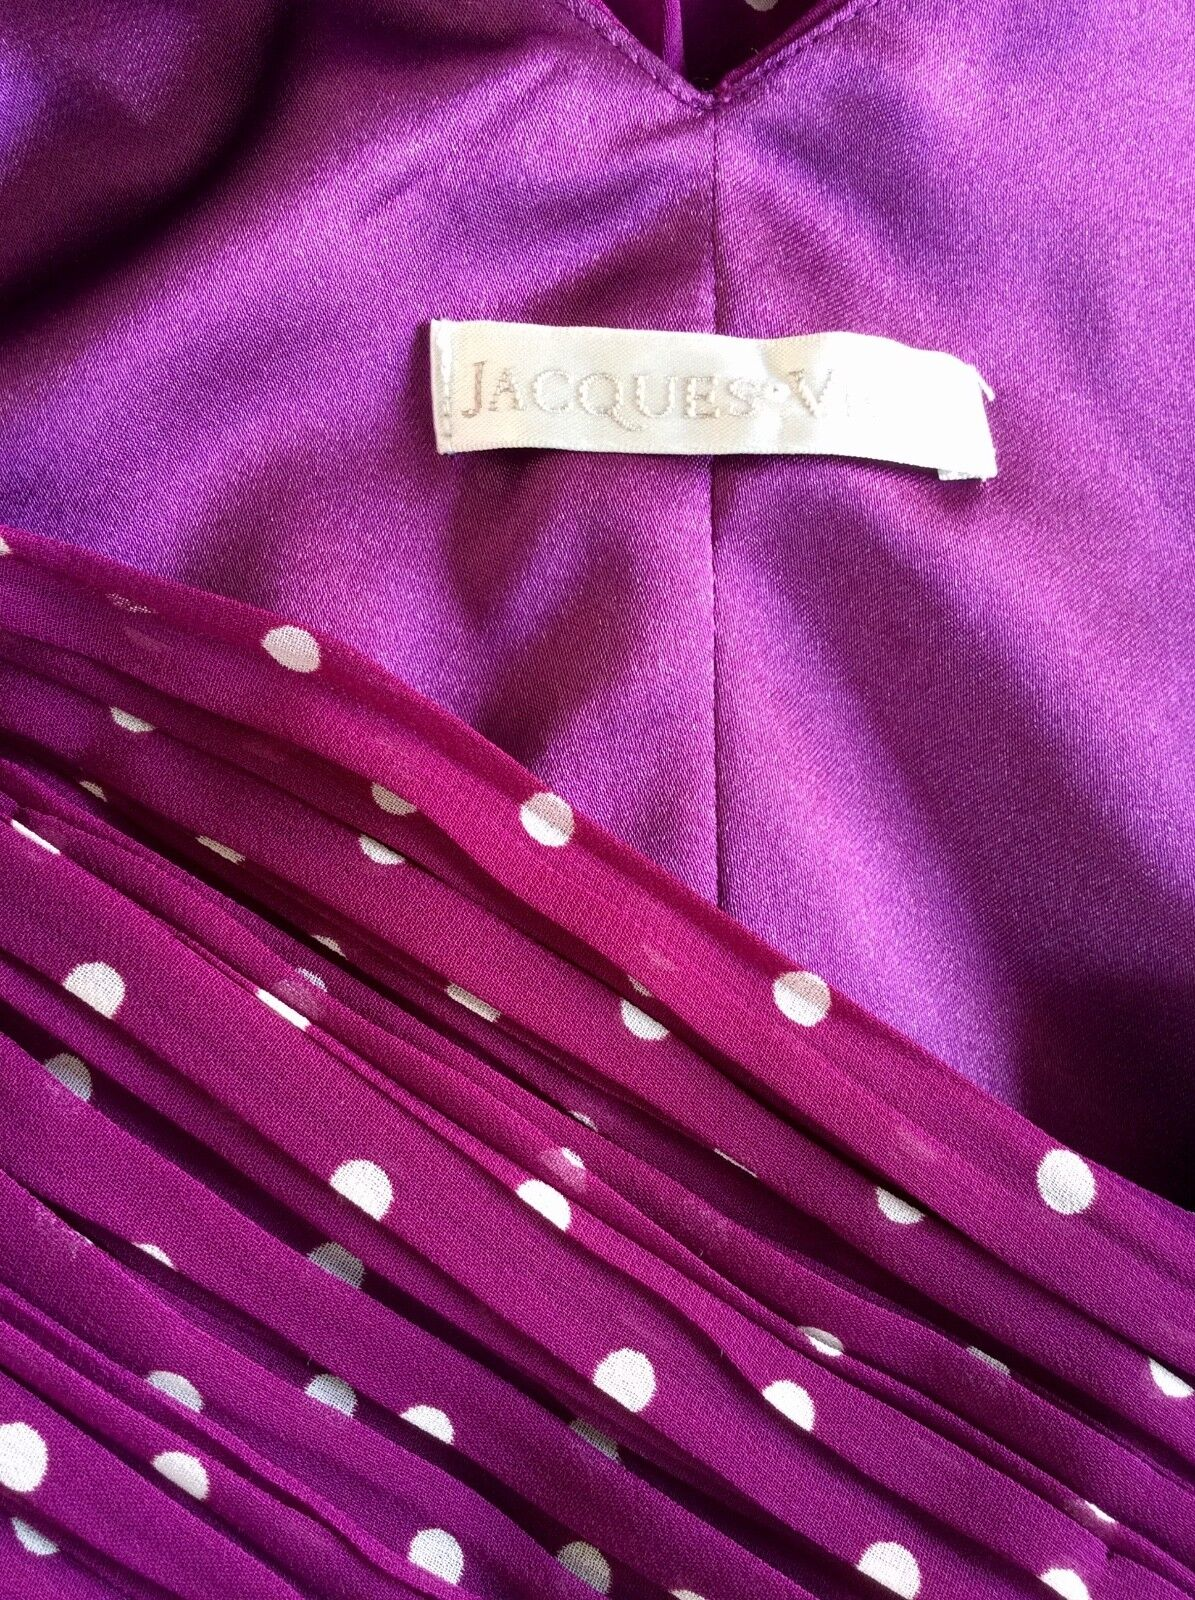 JACQUES green DEEP MAGENTA PINK SPOTTED PLEATED SPECIAL OCCASION OCCASION OCCASION DRESS SIZE 10 1c72a2